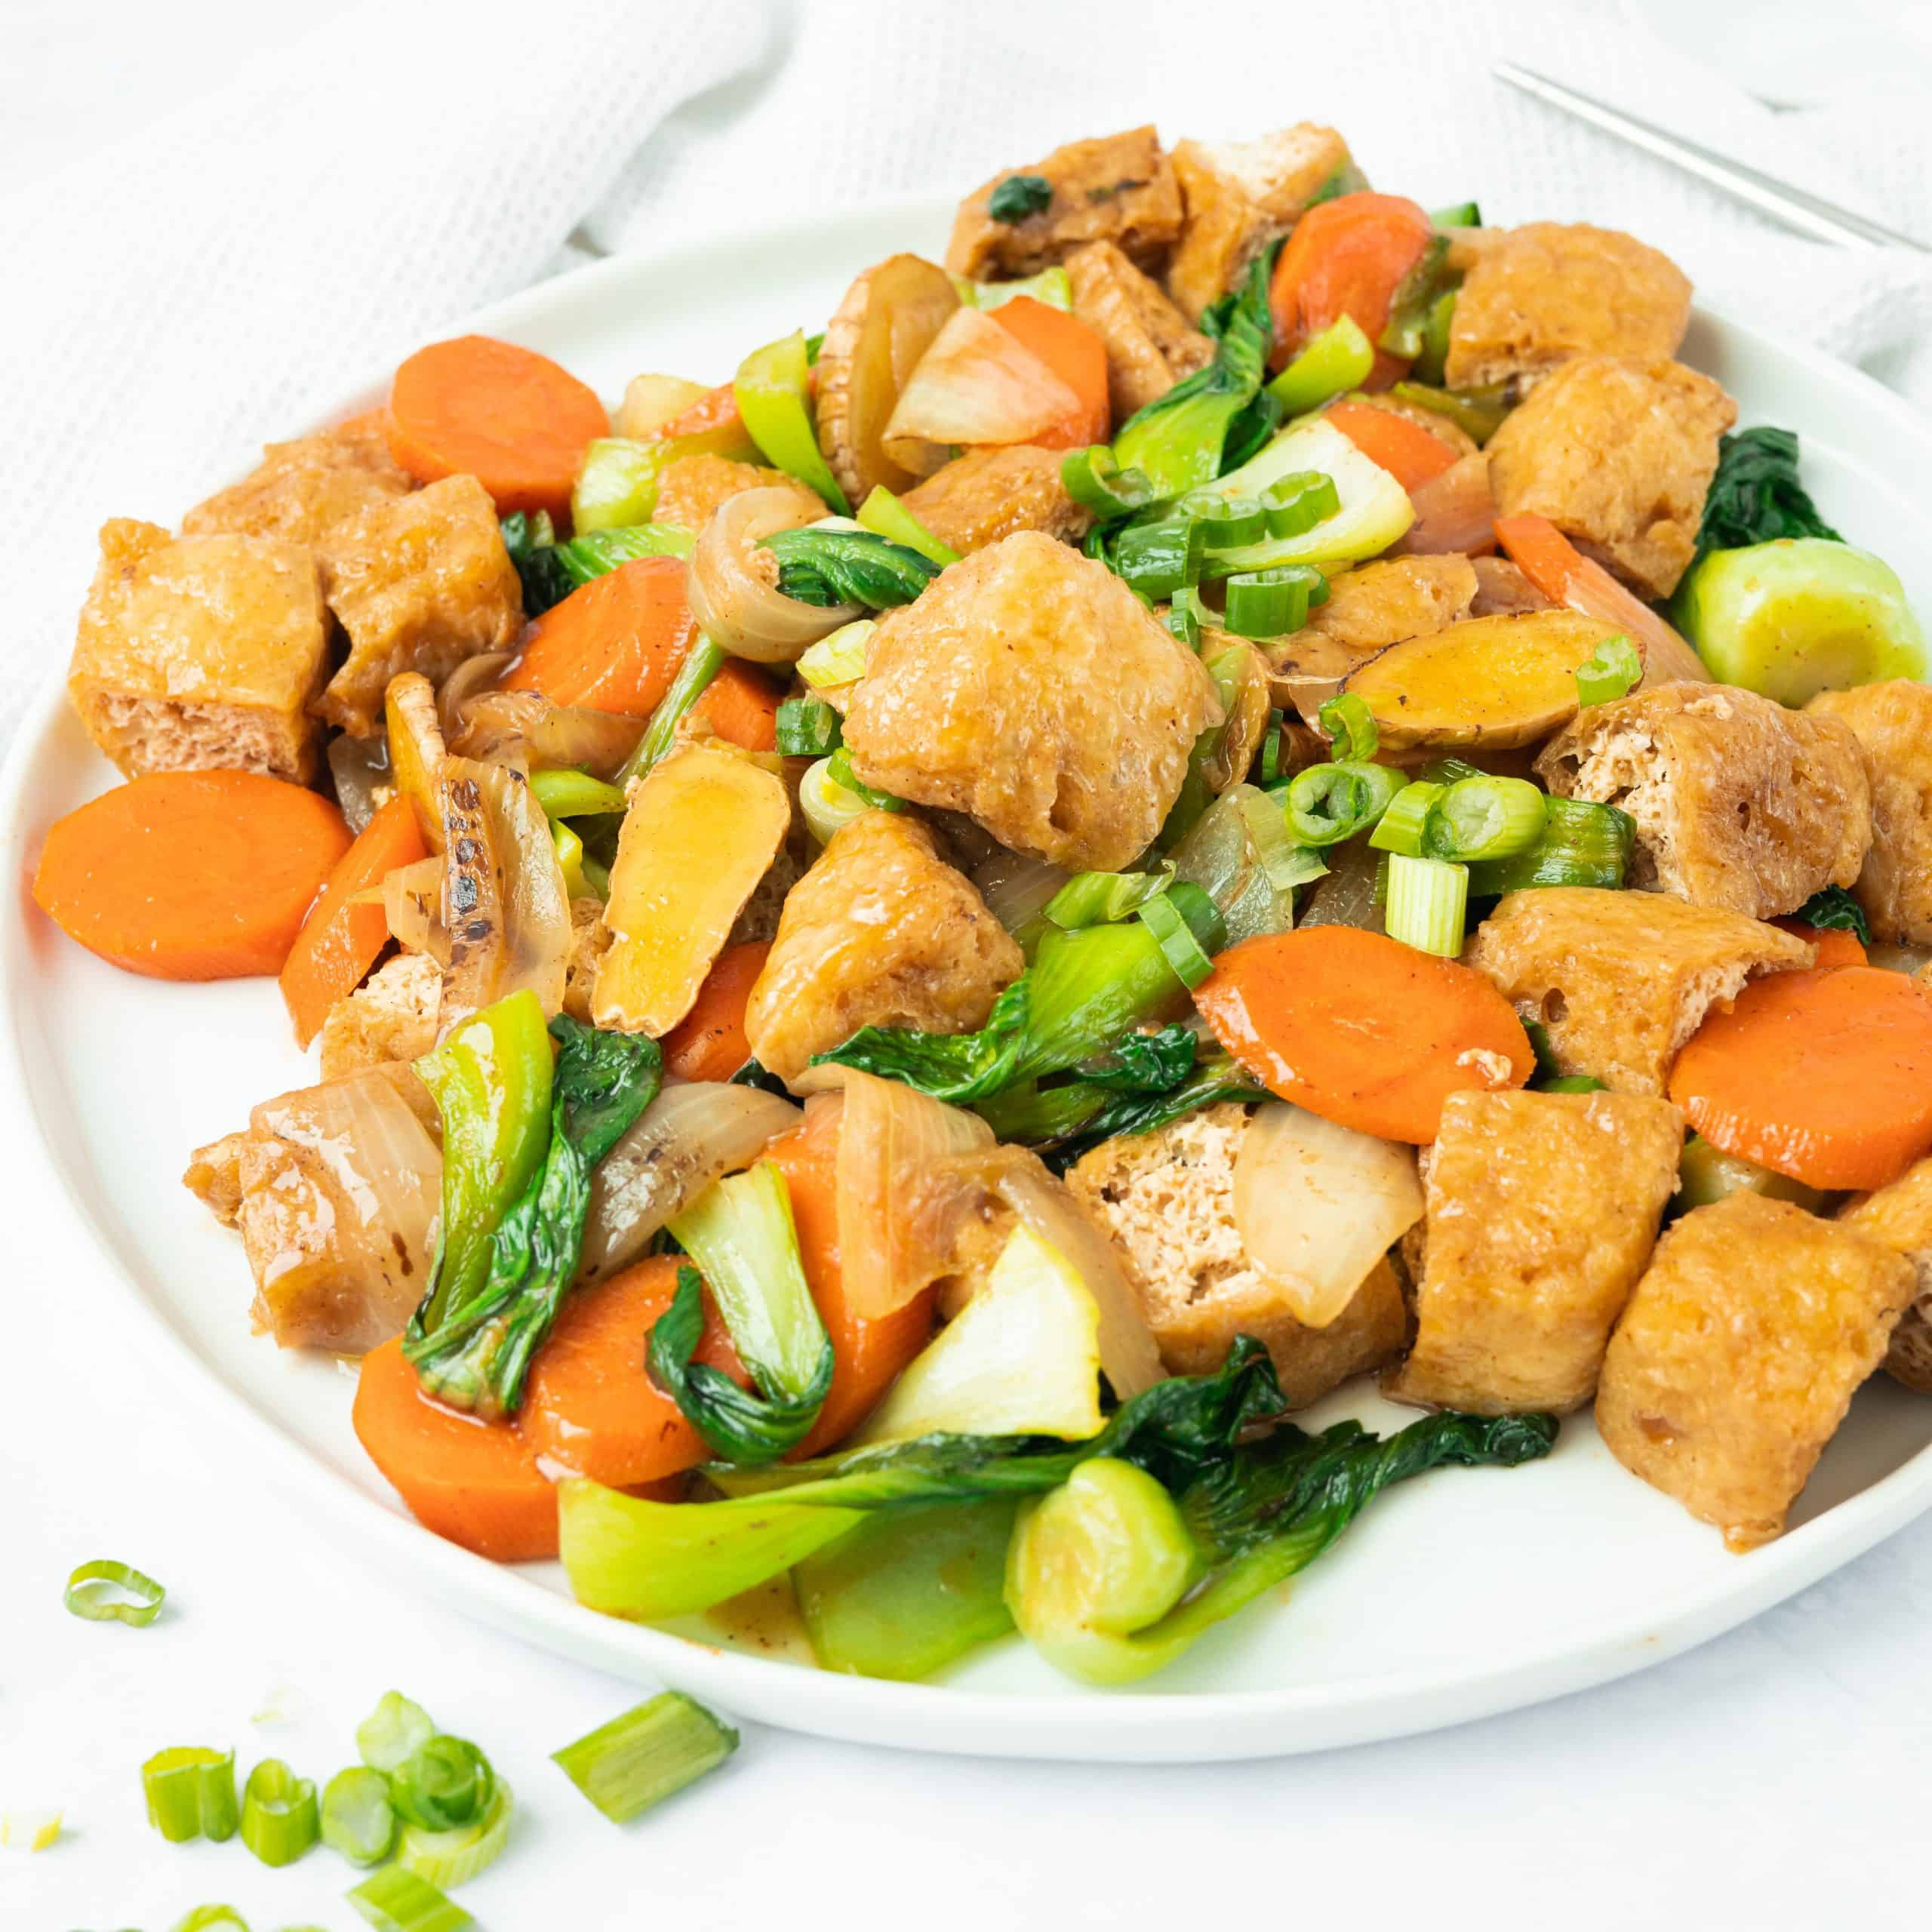 Chinese Five Spice Tofu Stir-fry